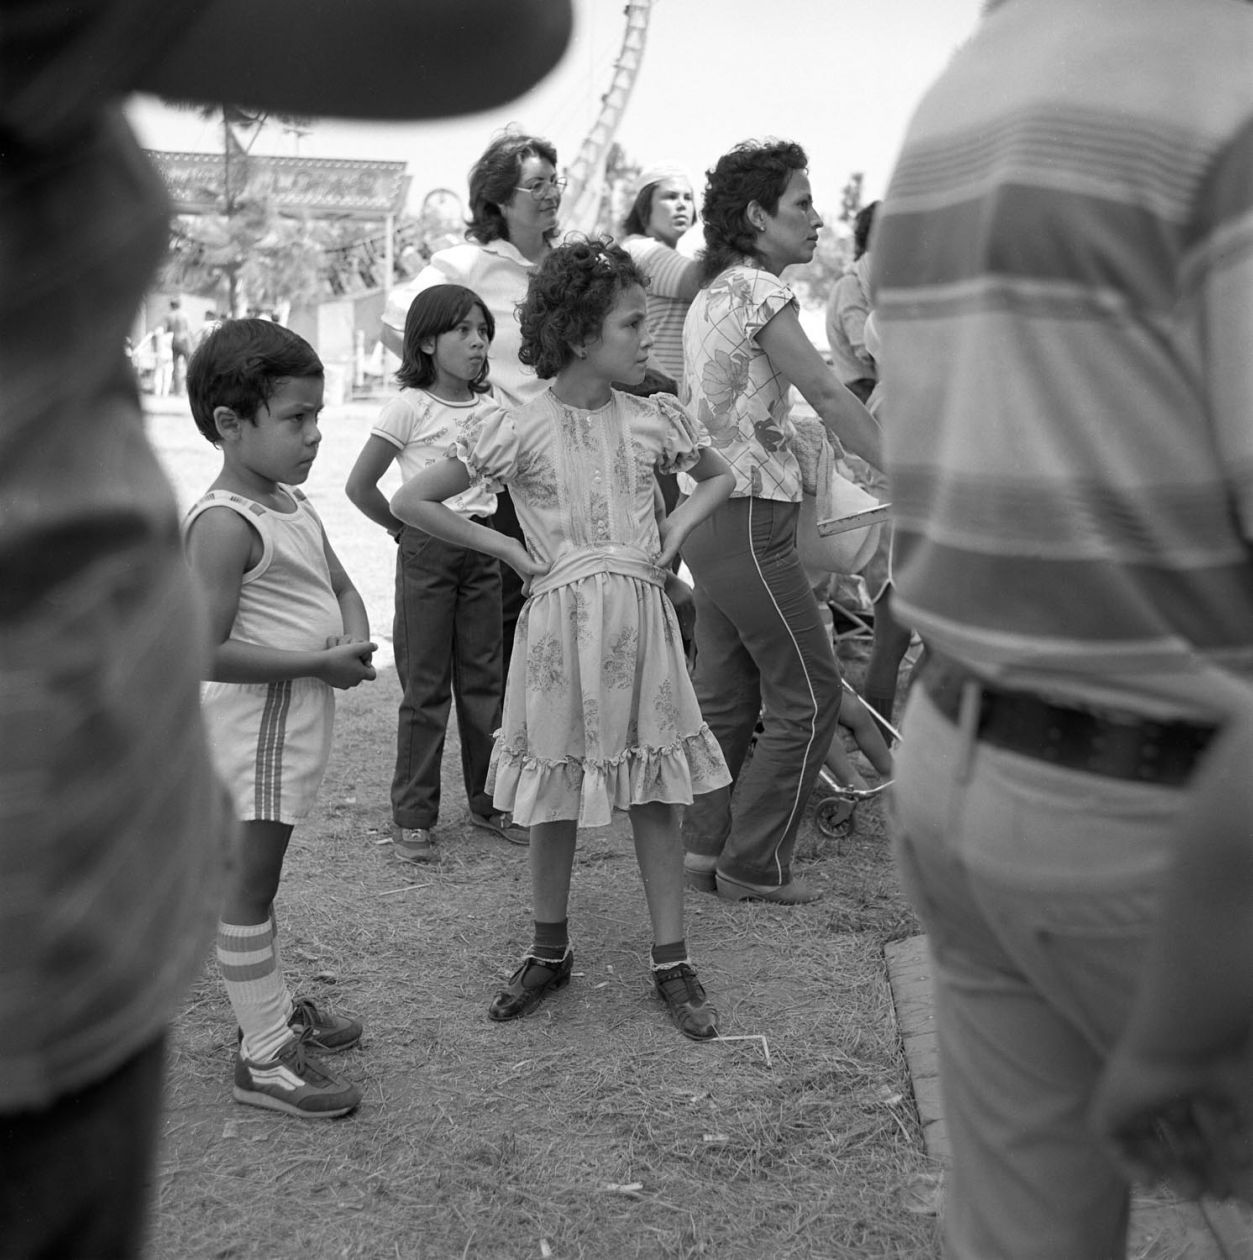 From Angel City West (girl in dress) (1983) by Mark Steinmetz